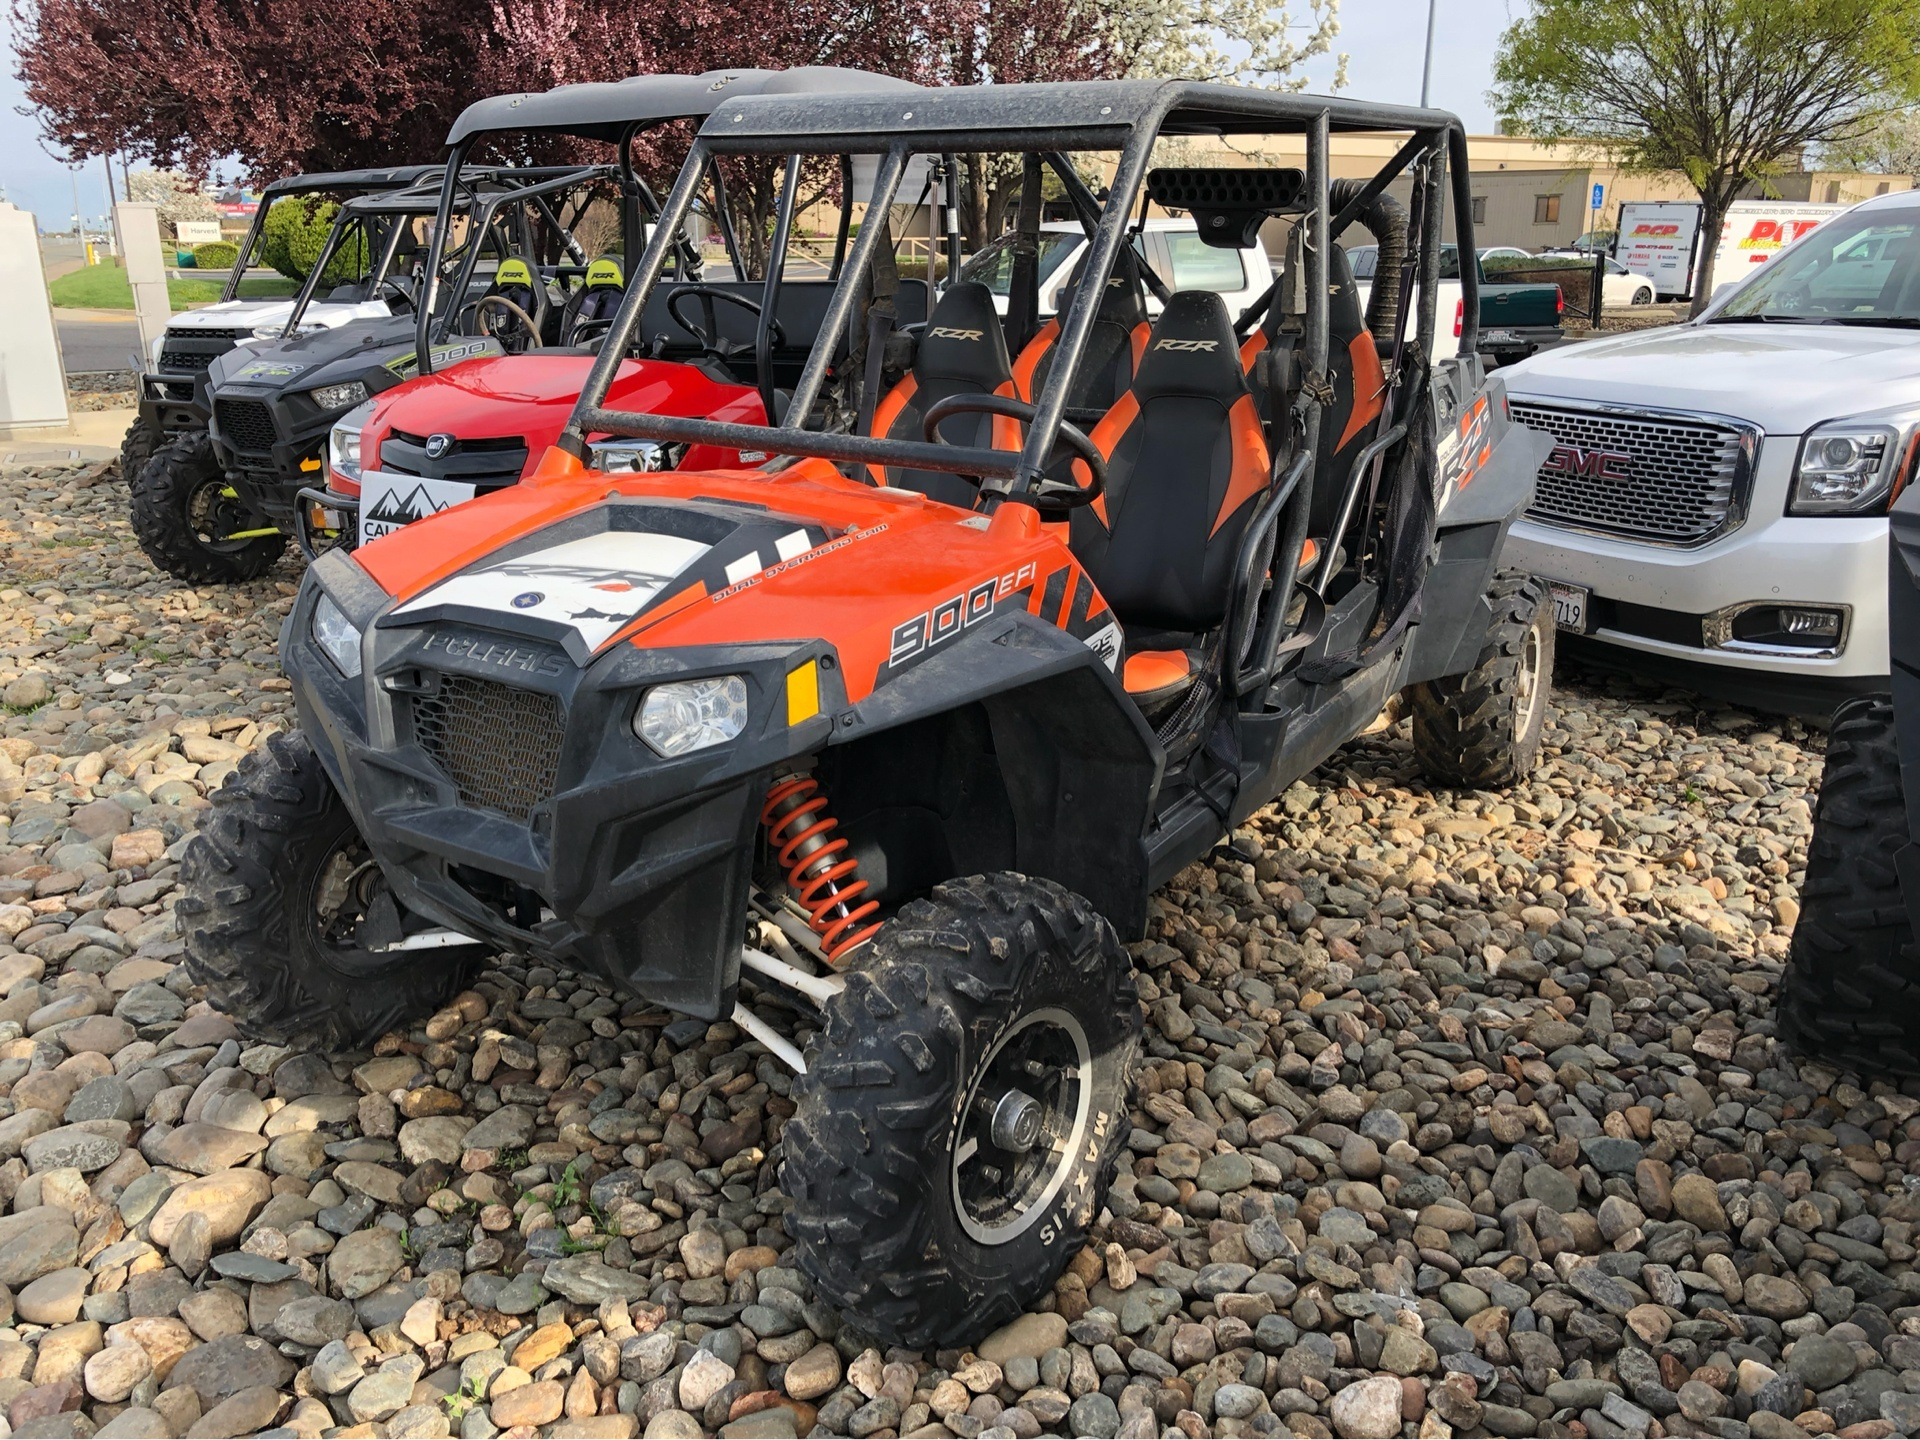 2012 Polaris Ranger RZR® XP 900 LE in Elk Grove, California - Photo 3